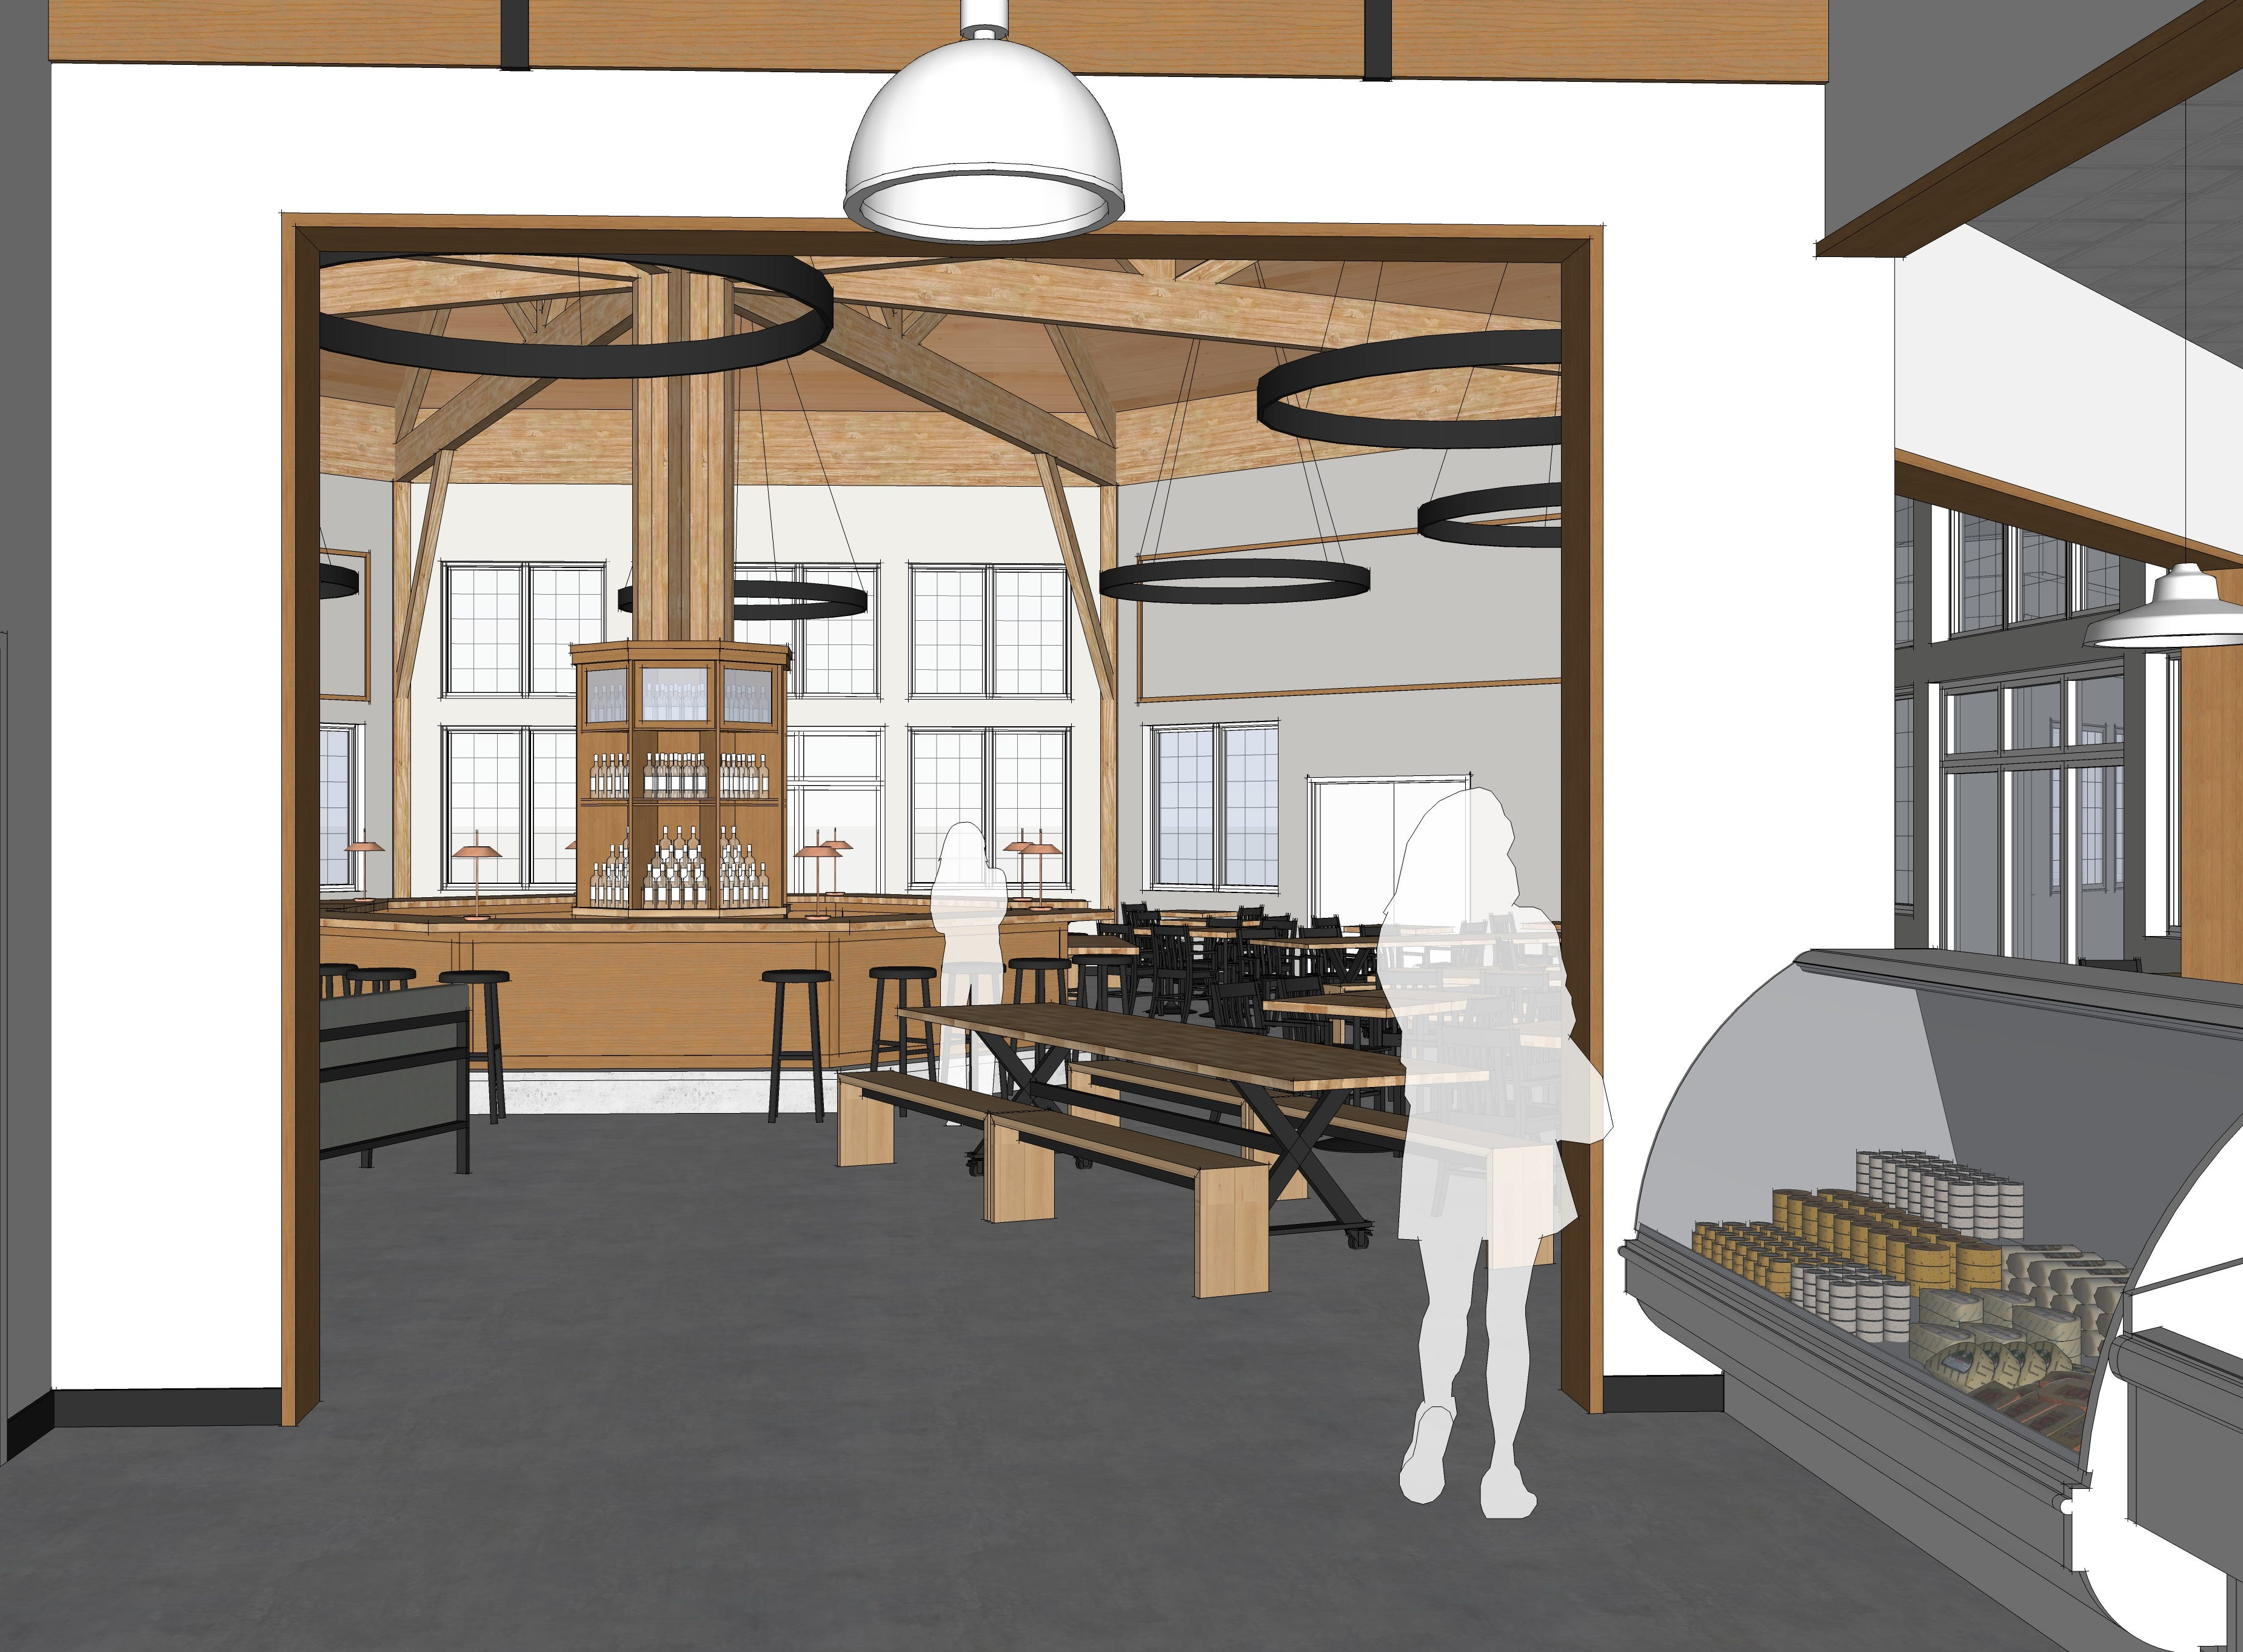 The cheese/deli area is shown in this architect rendering of Look's Market's plans for the former C.J. Callaway's in south Sioux Falls.